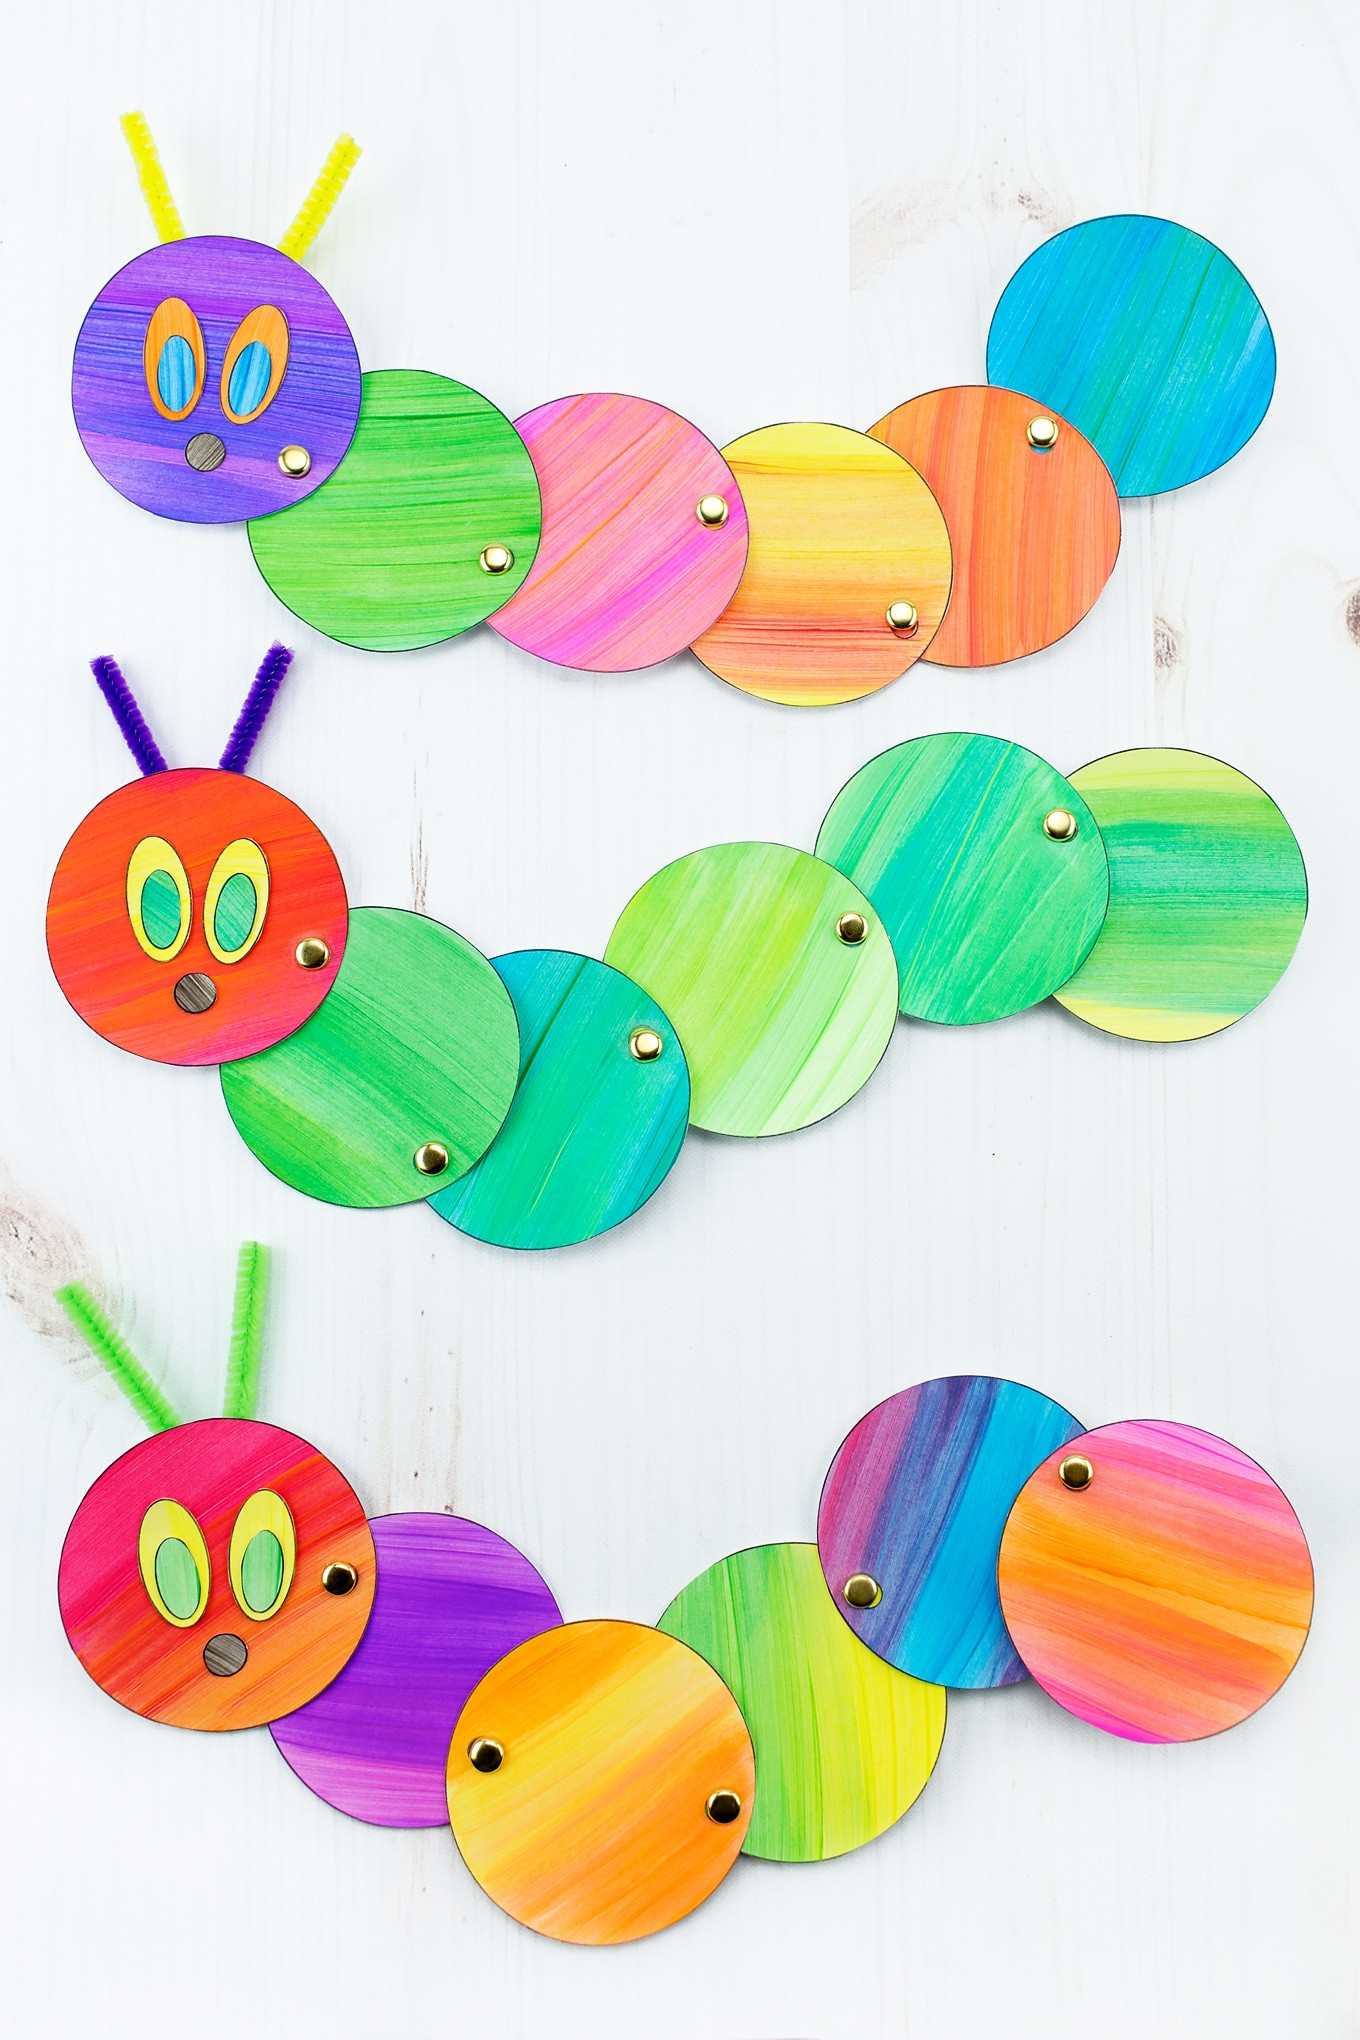 Best ideas about Simple Crafts For Toddlers . Save or Pin How to Make an Easy and Fun Wiggling Caterpillar Craft Now.